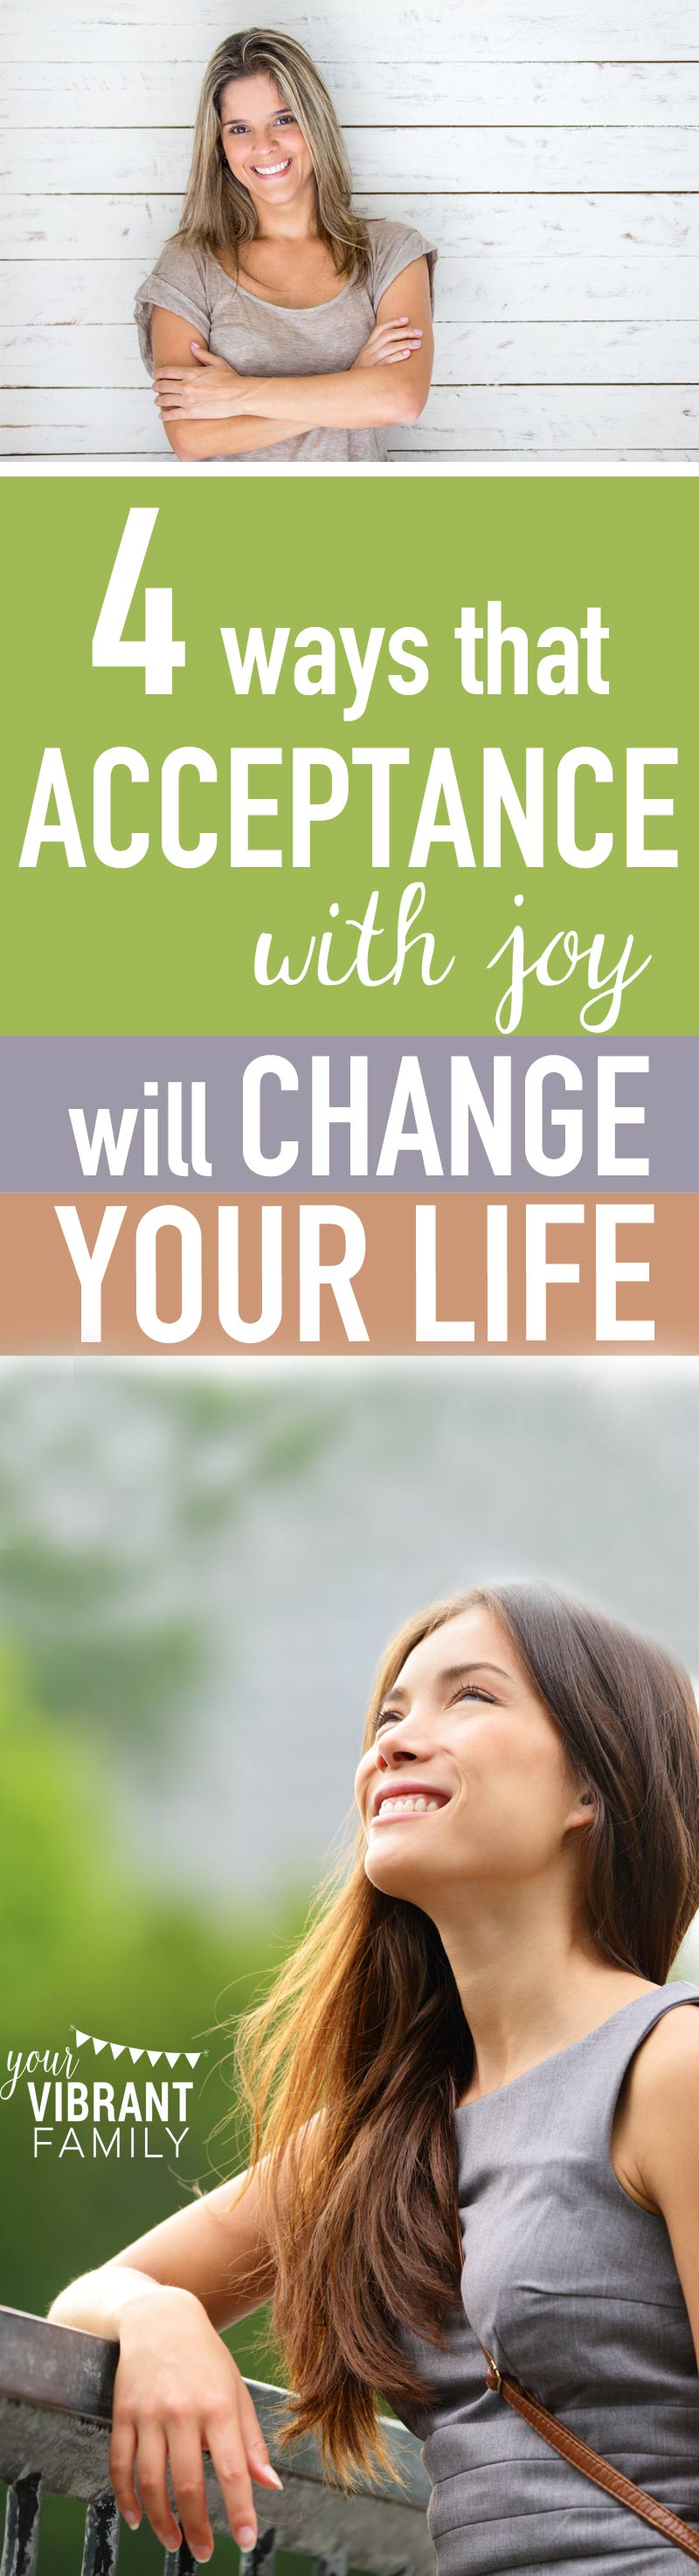 "It is SO EASY to be depressed and annoyed by our present circumstances with our kids or our husbands. But we don't have to live annoyed and unhappy. We have choices, and I want to show you how the simple phrase ""acceptance with joy"" can reframe even the hardest parts of your life TODAY."